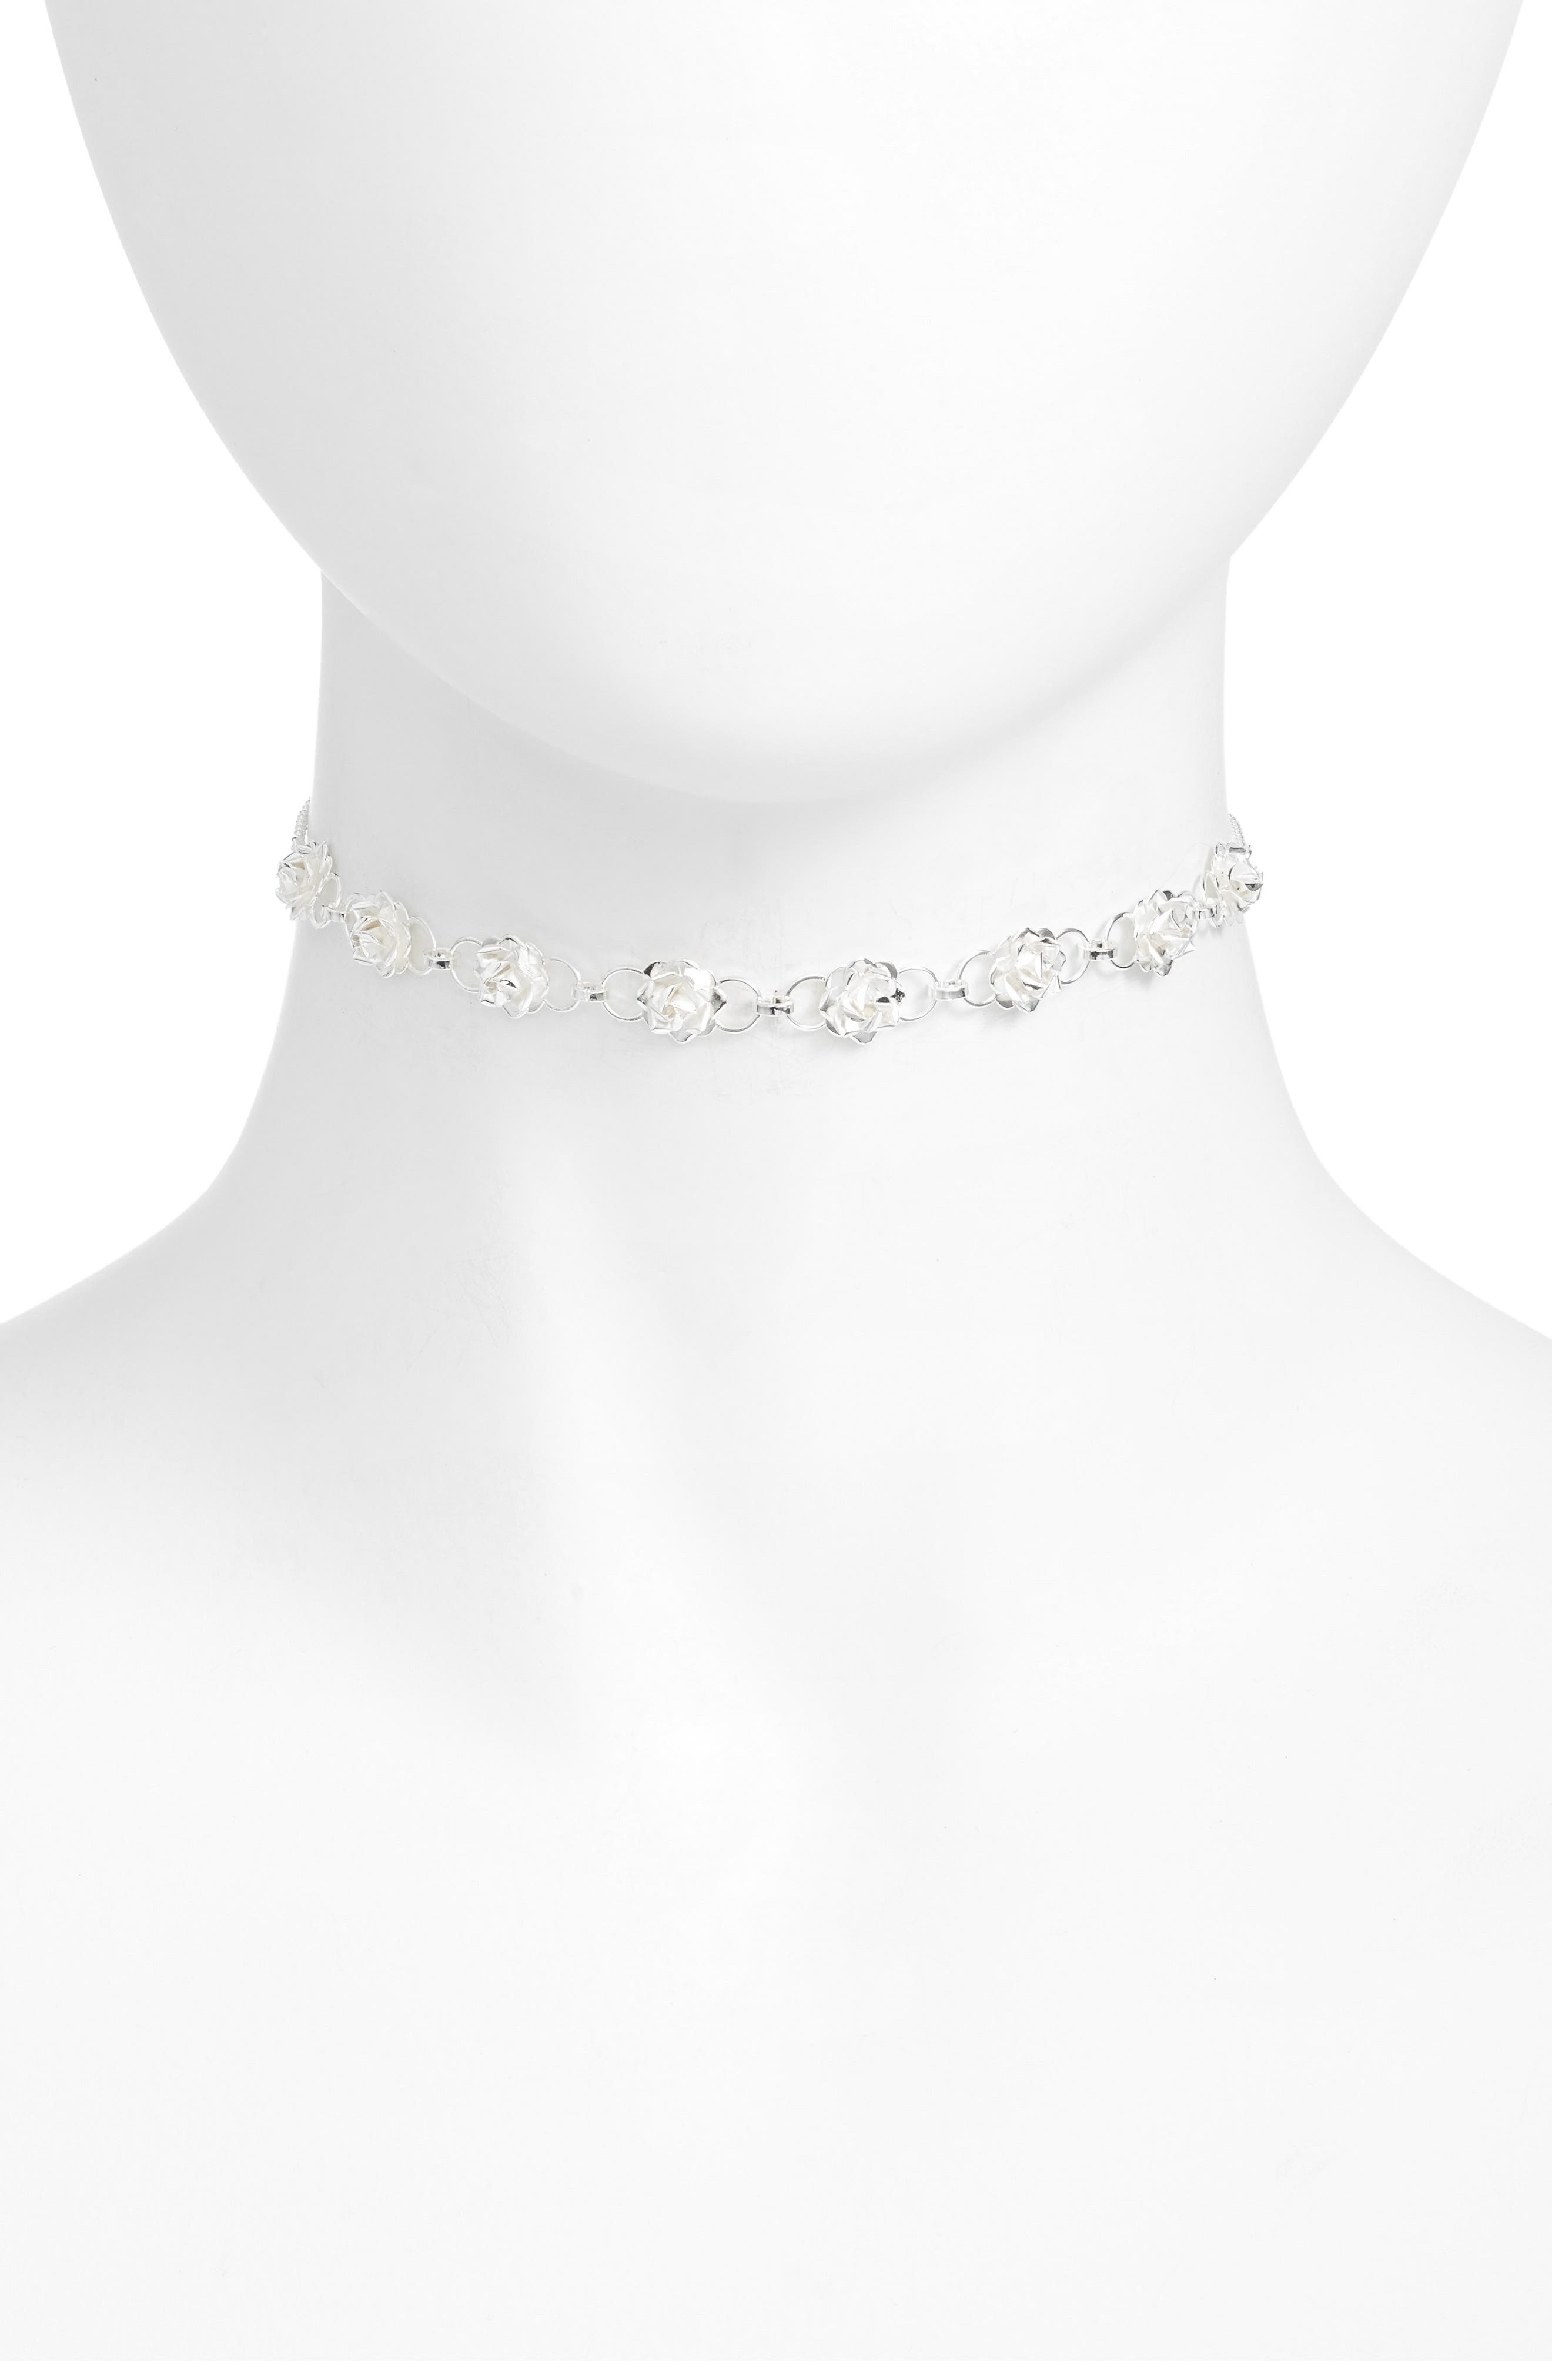 Rose Station Choker Necklace,                             Main thumbnail 1, color,                             040